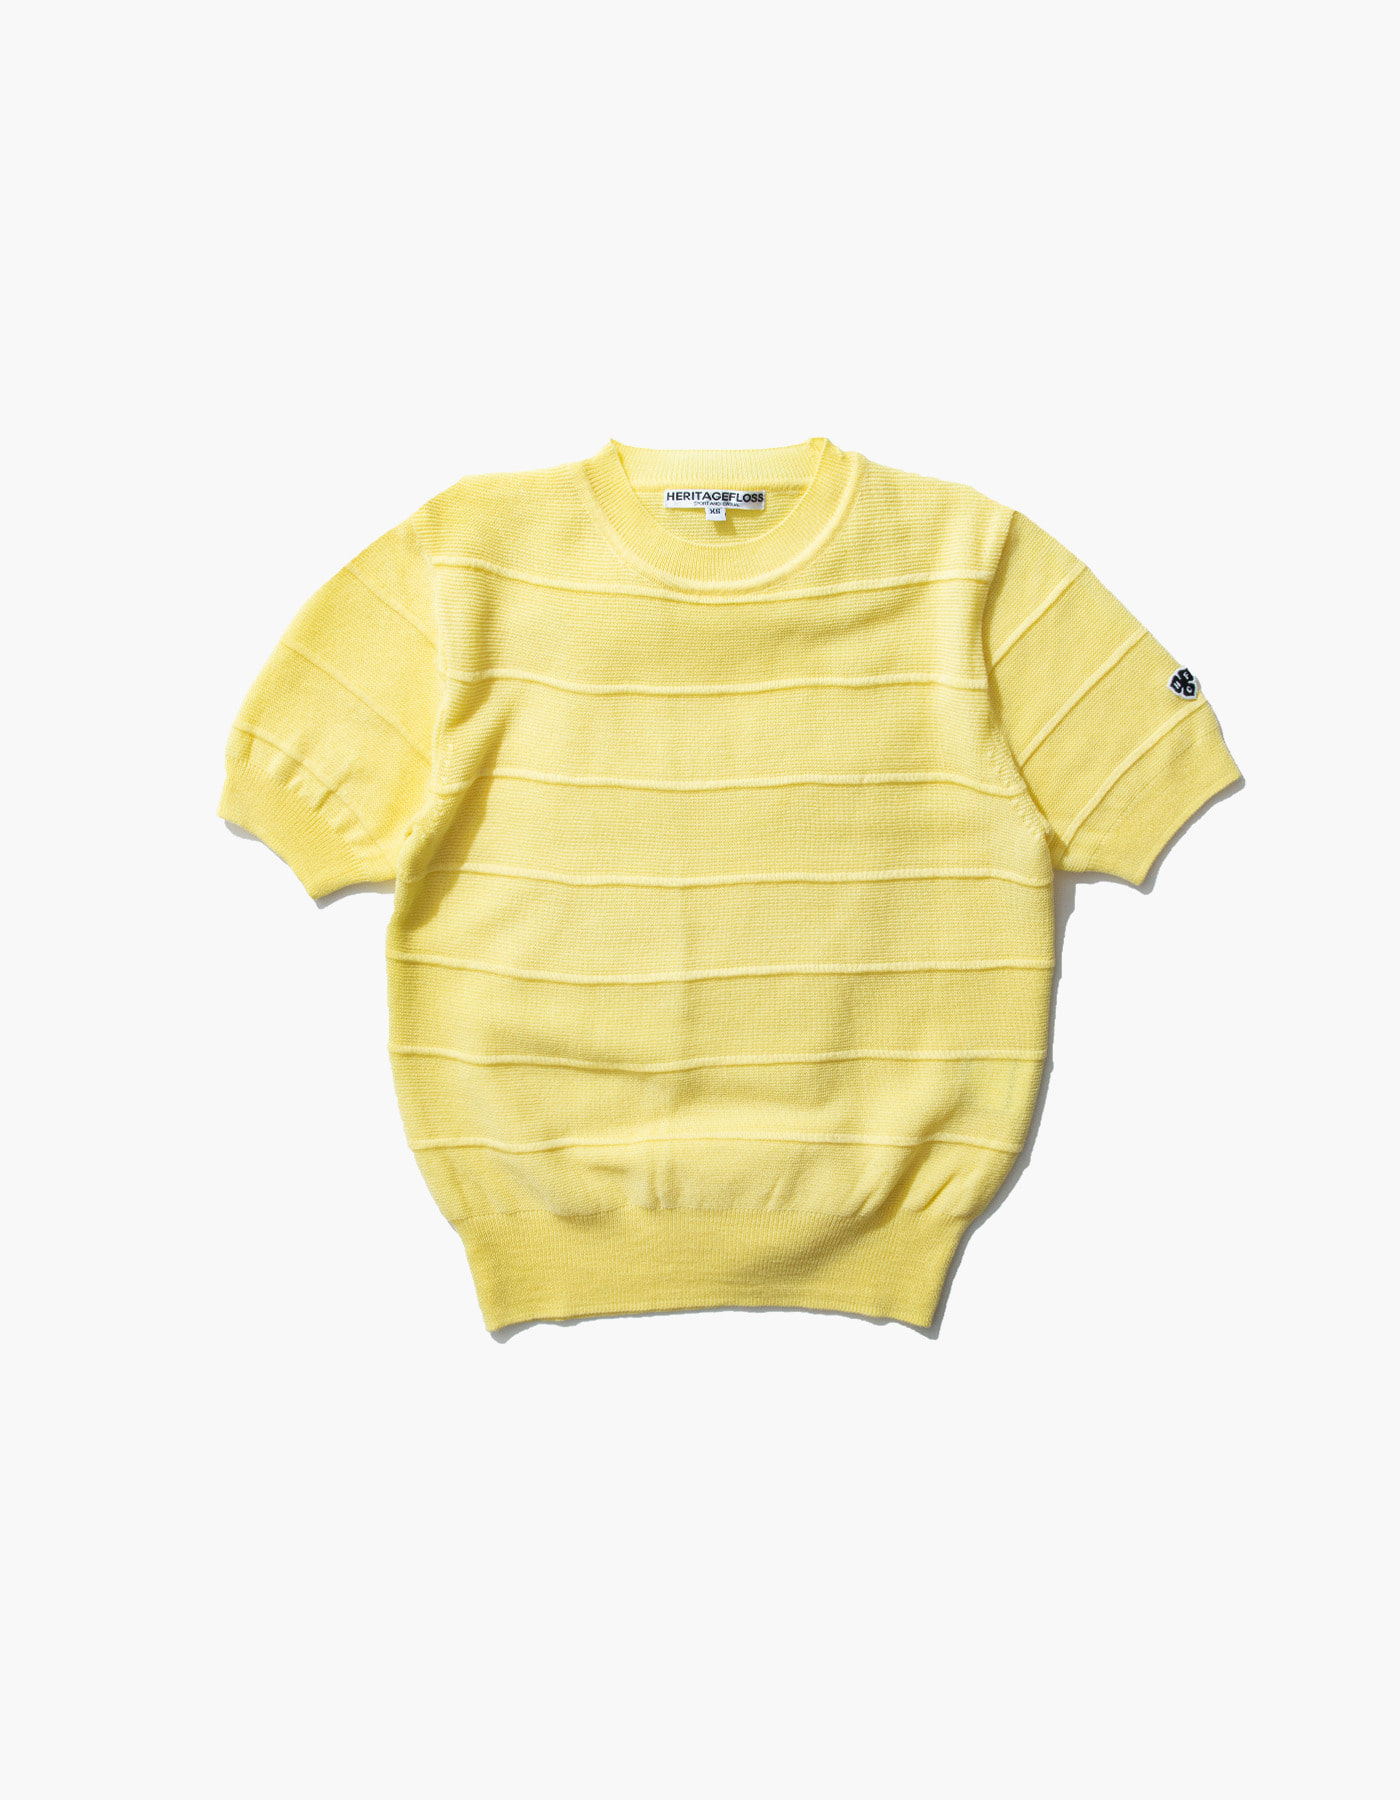 HFC CLOVER HALF SLEEVE (W) / LIGHT YELLOW